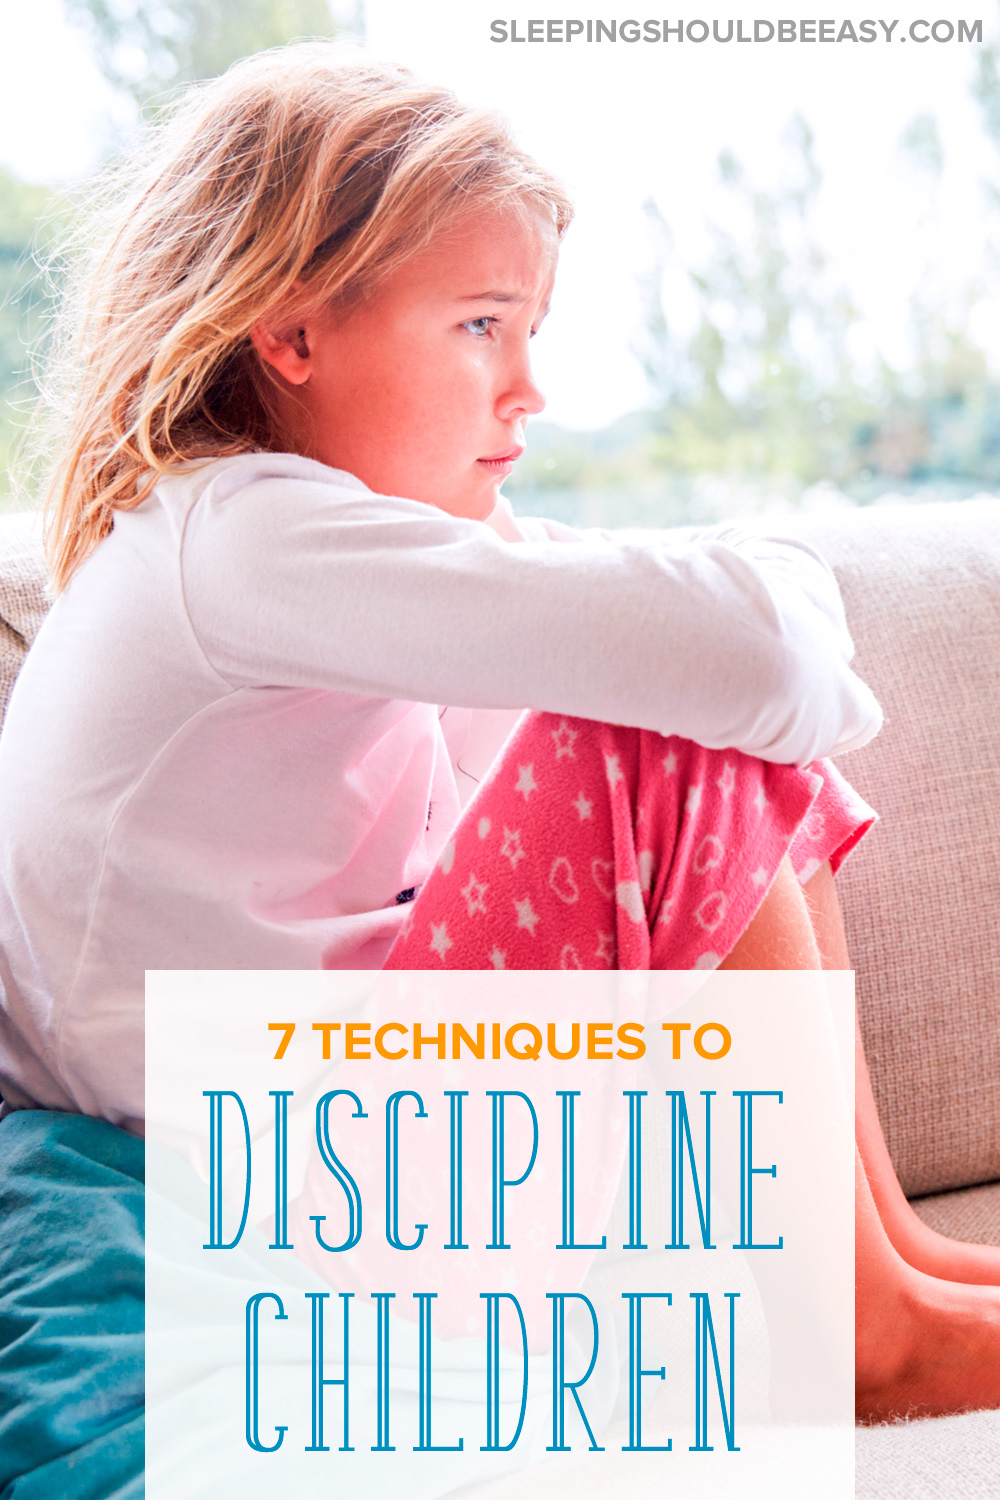 Discipline is nothing more than teaching our kids how to behave and manage their emotions. Read these 7 effective techniques to discipline children.